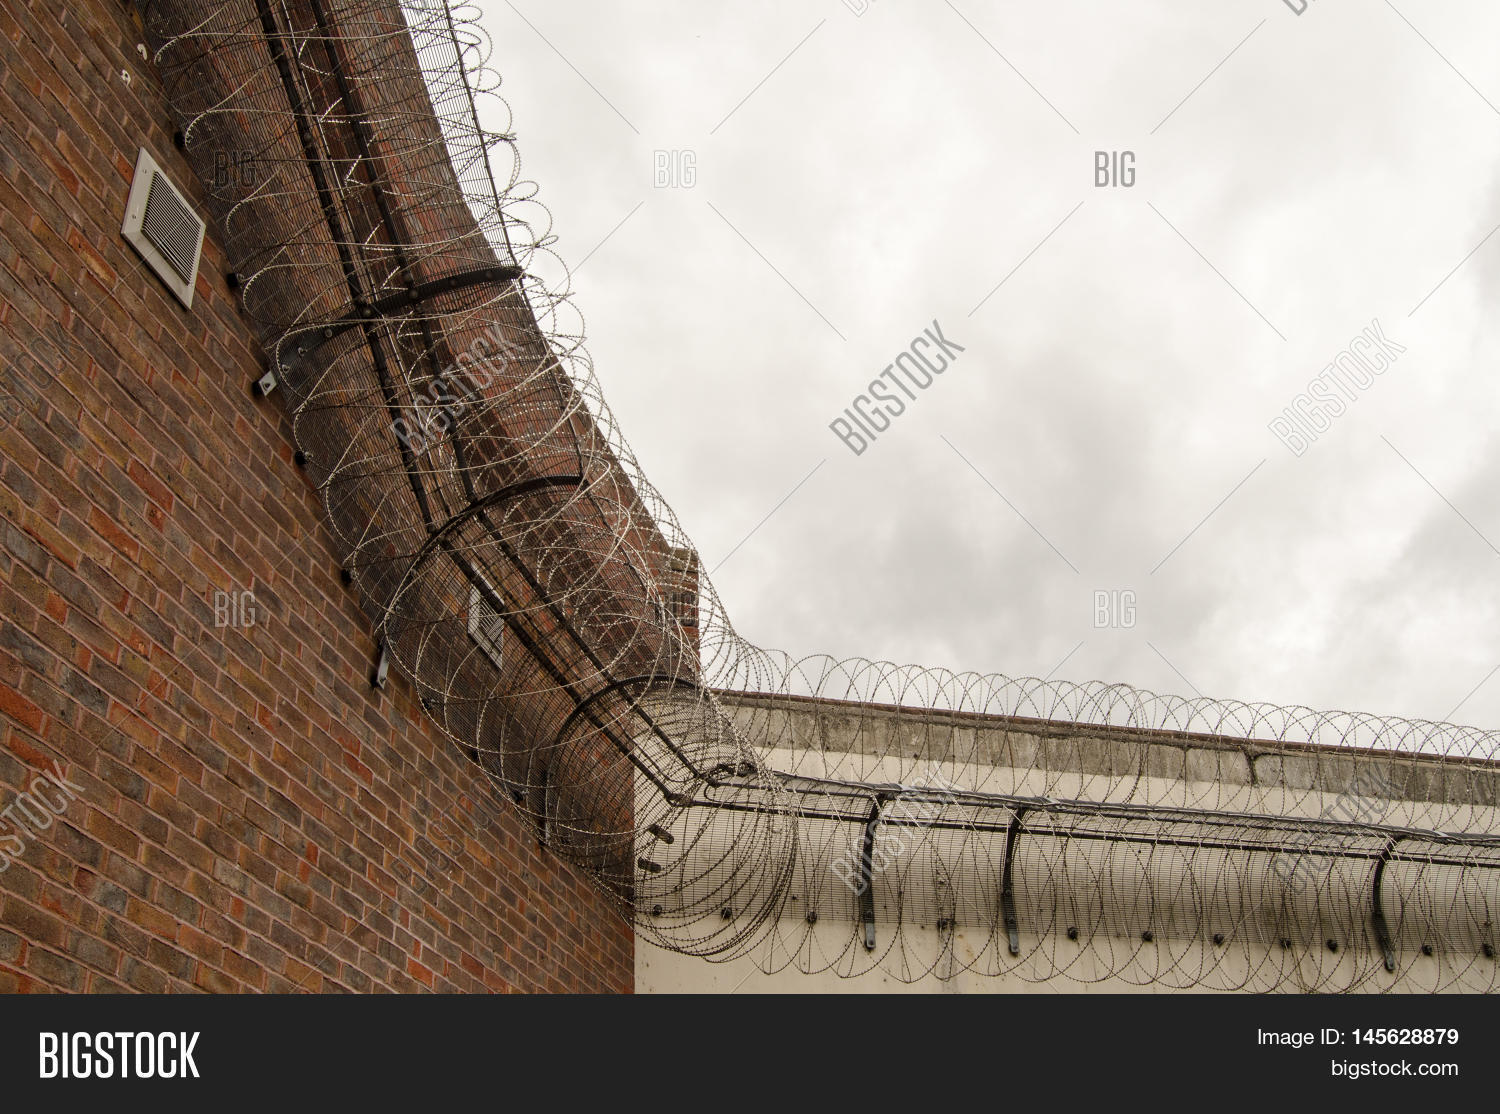 Looking Tall Wall Surrounding Image & Photo | Bigstock